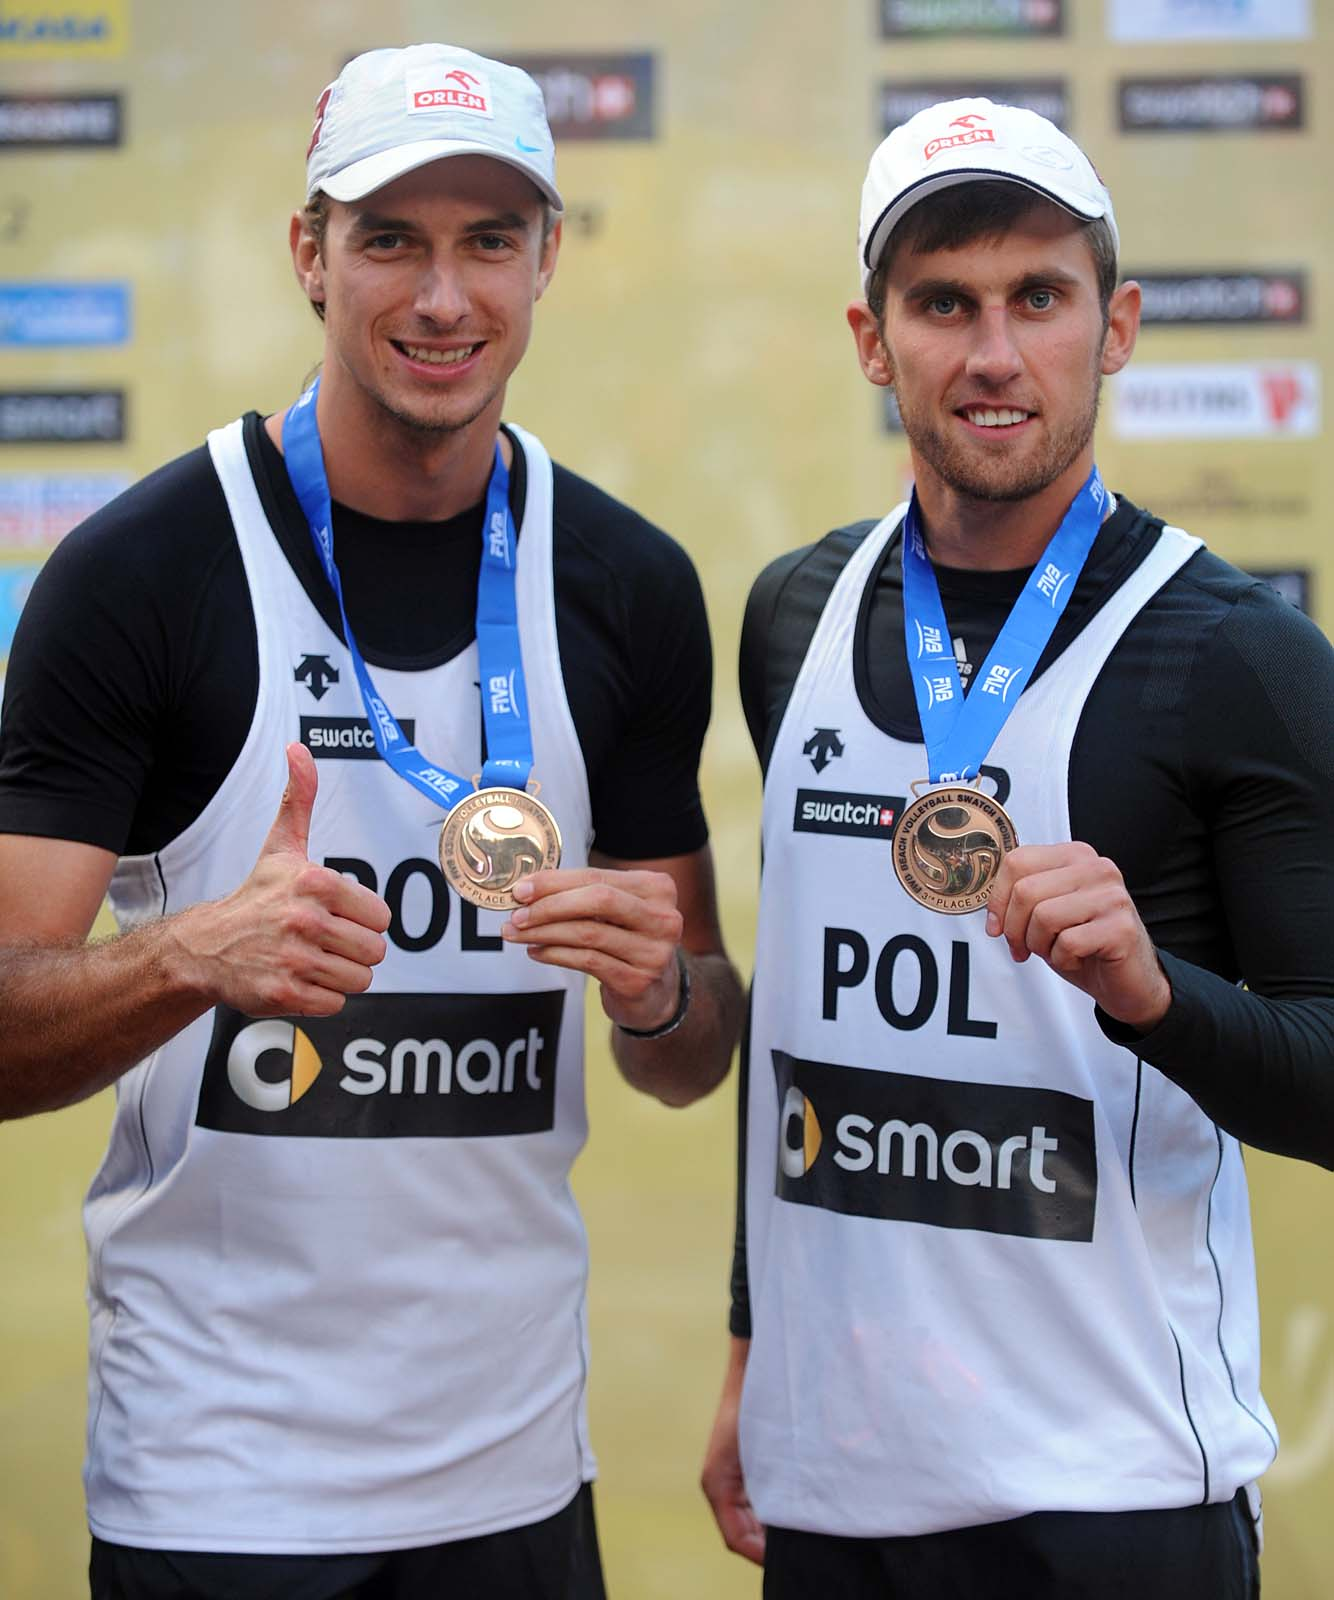 Bronze medalists from Poland Mariusz Prudel (left) and Grzegorz Fijalek